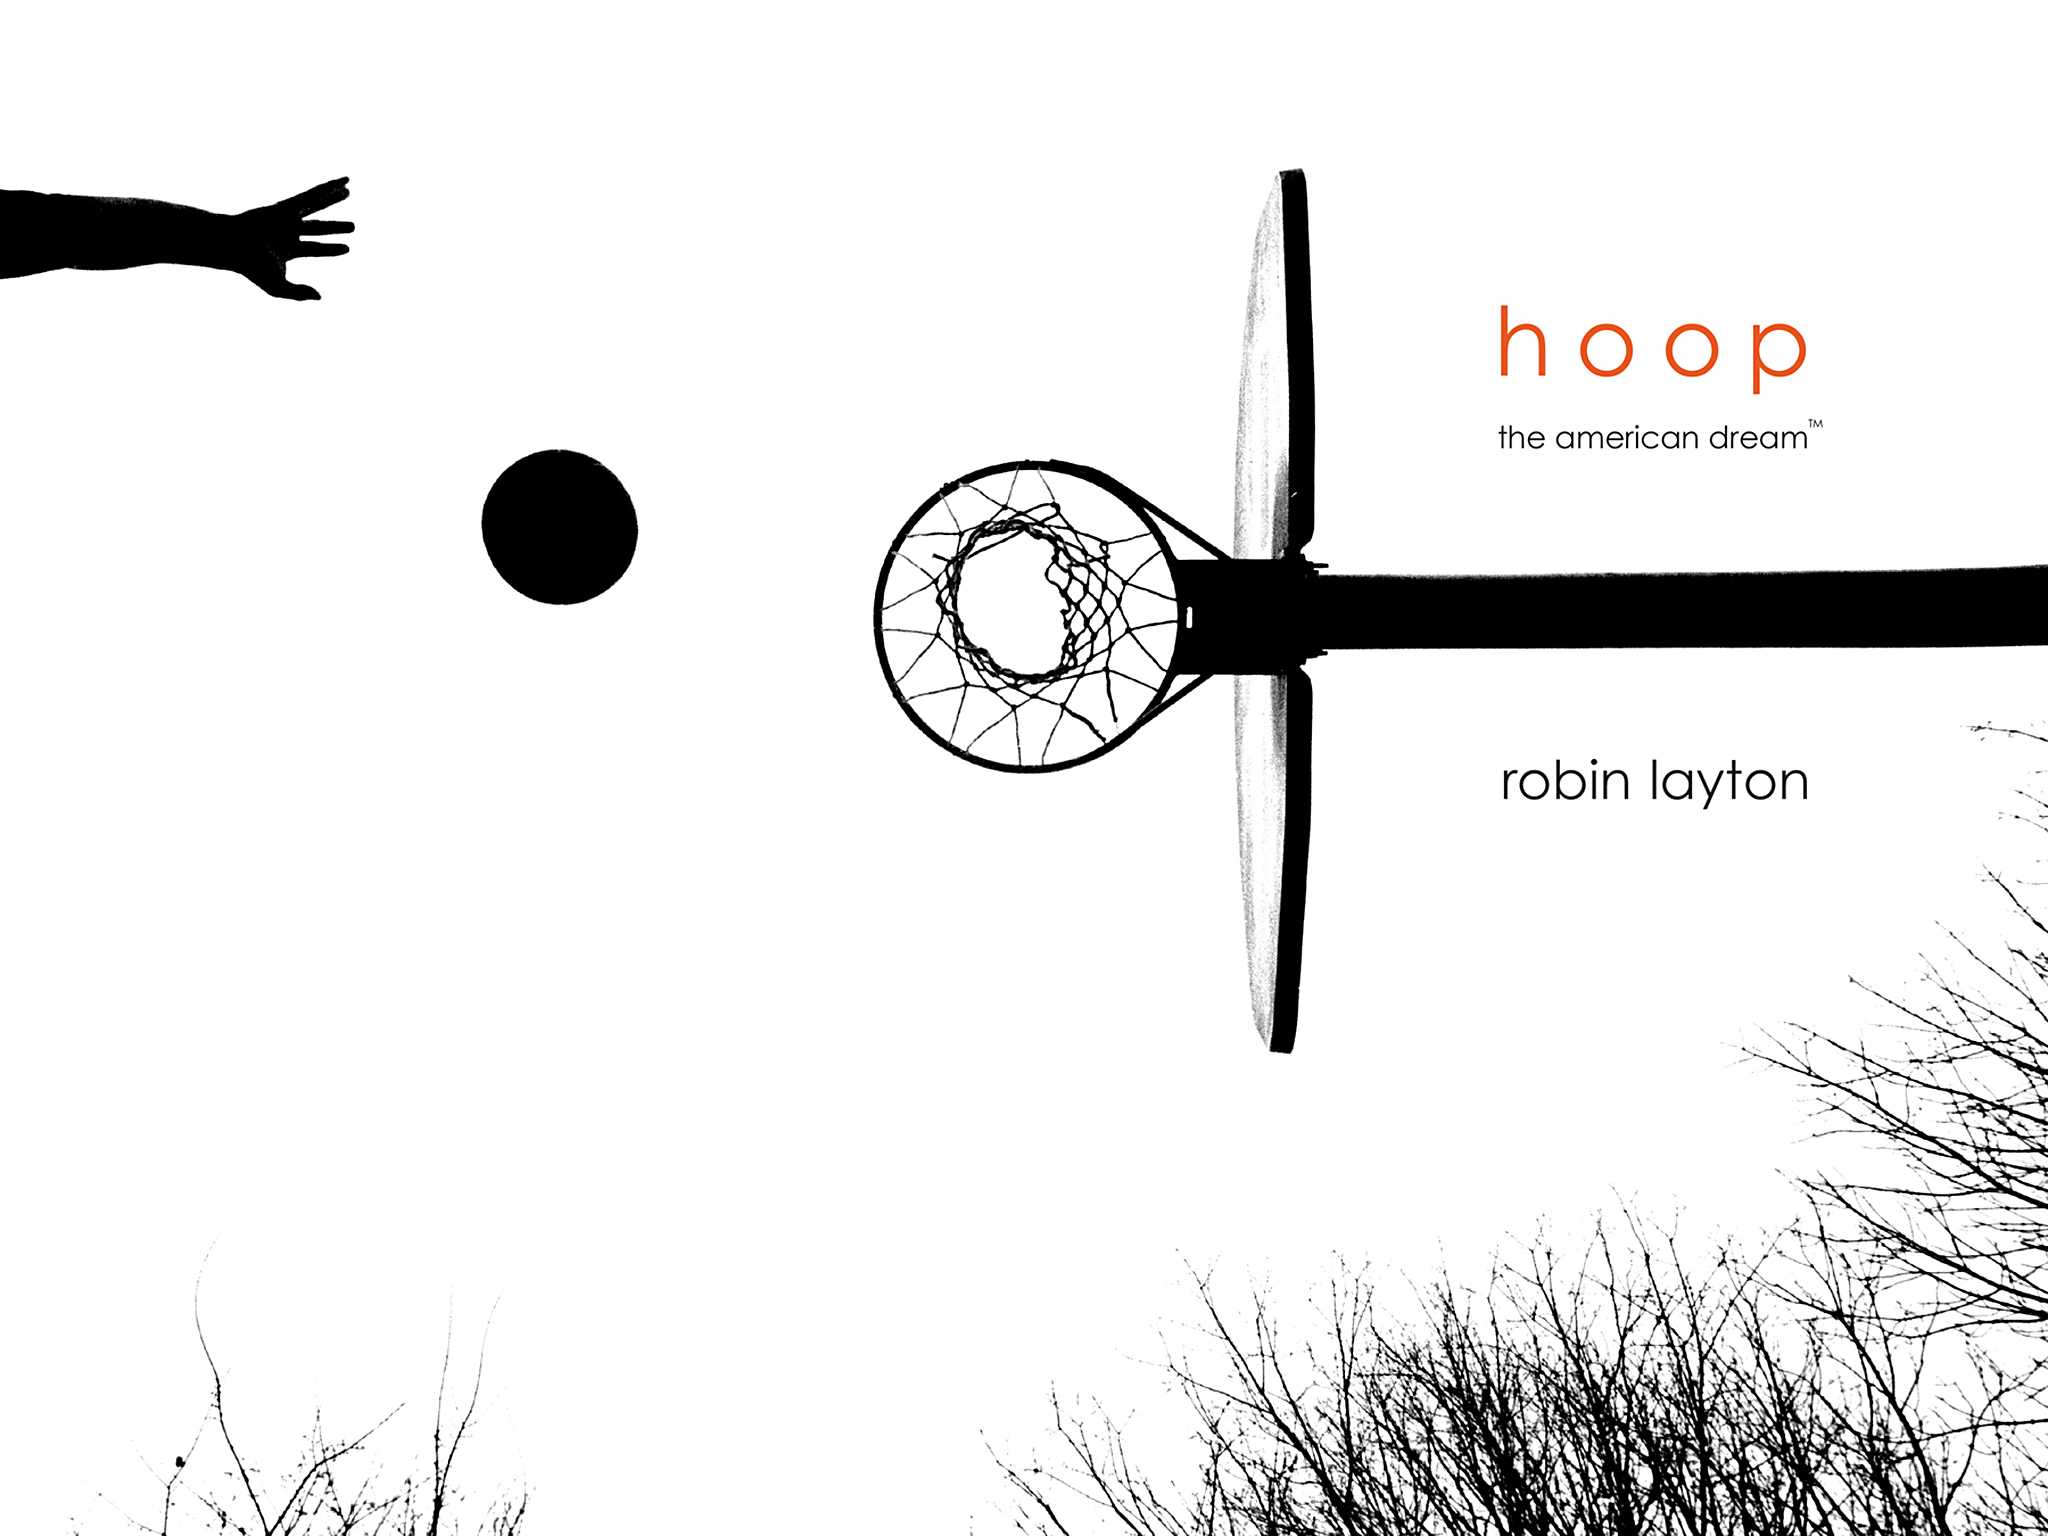 Hoop: The American Dream